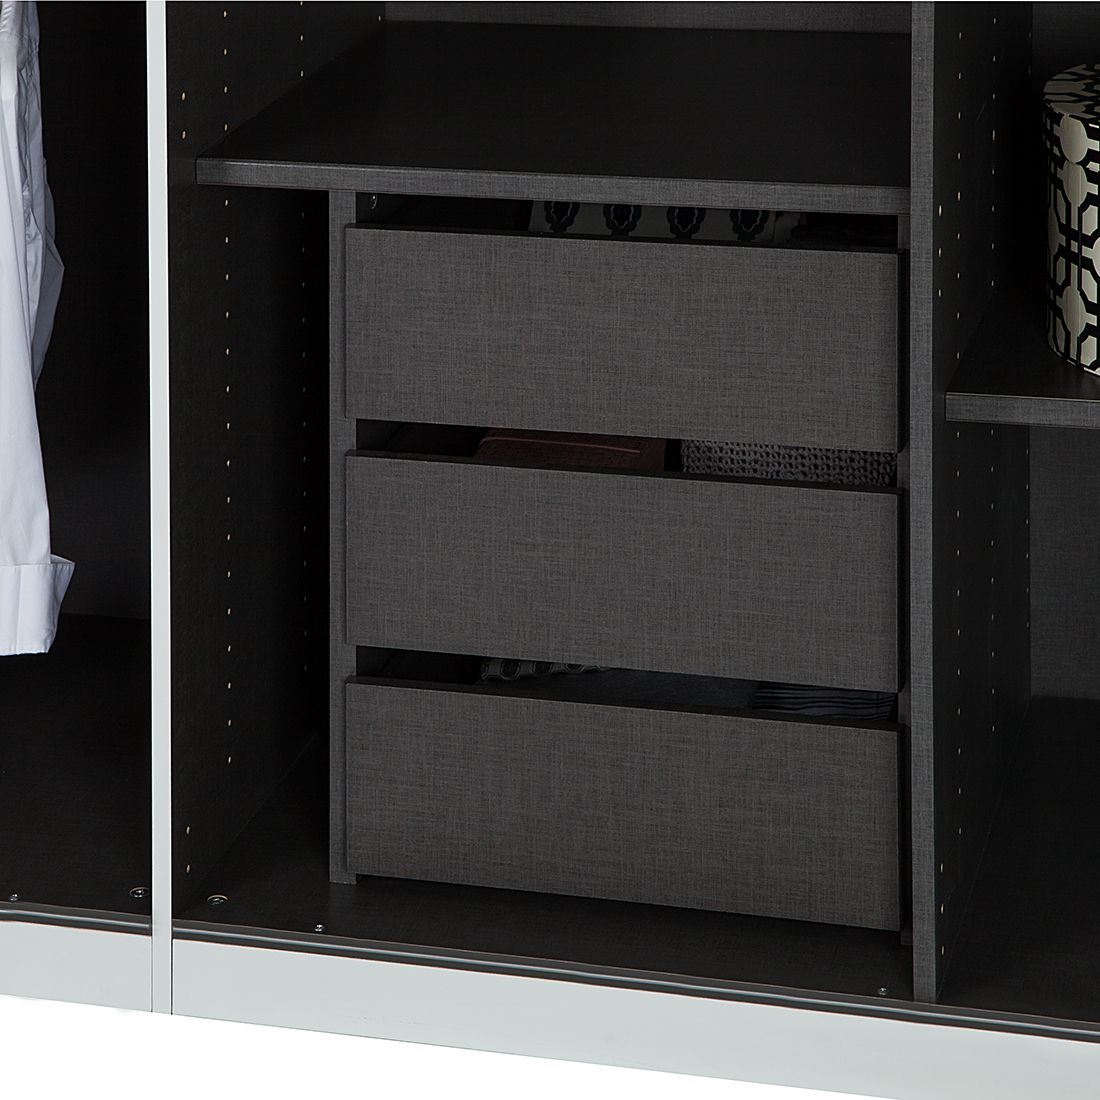 schrank tiefe 20 cm fackelmann sceno breite cm with schrank tiefe 20 cm kommode schrank wei. Black Bedroom Furniture Sets. Home Design Ideas